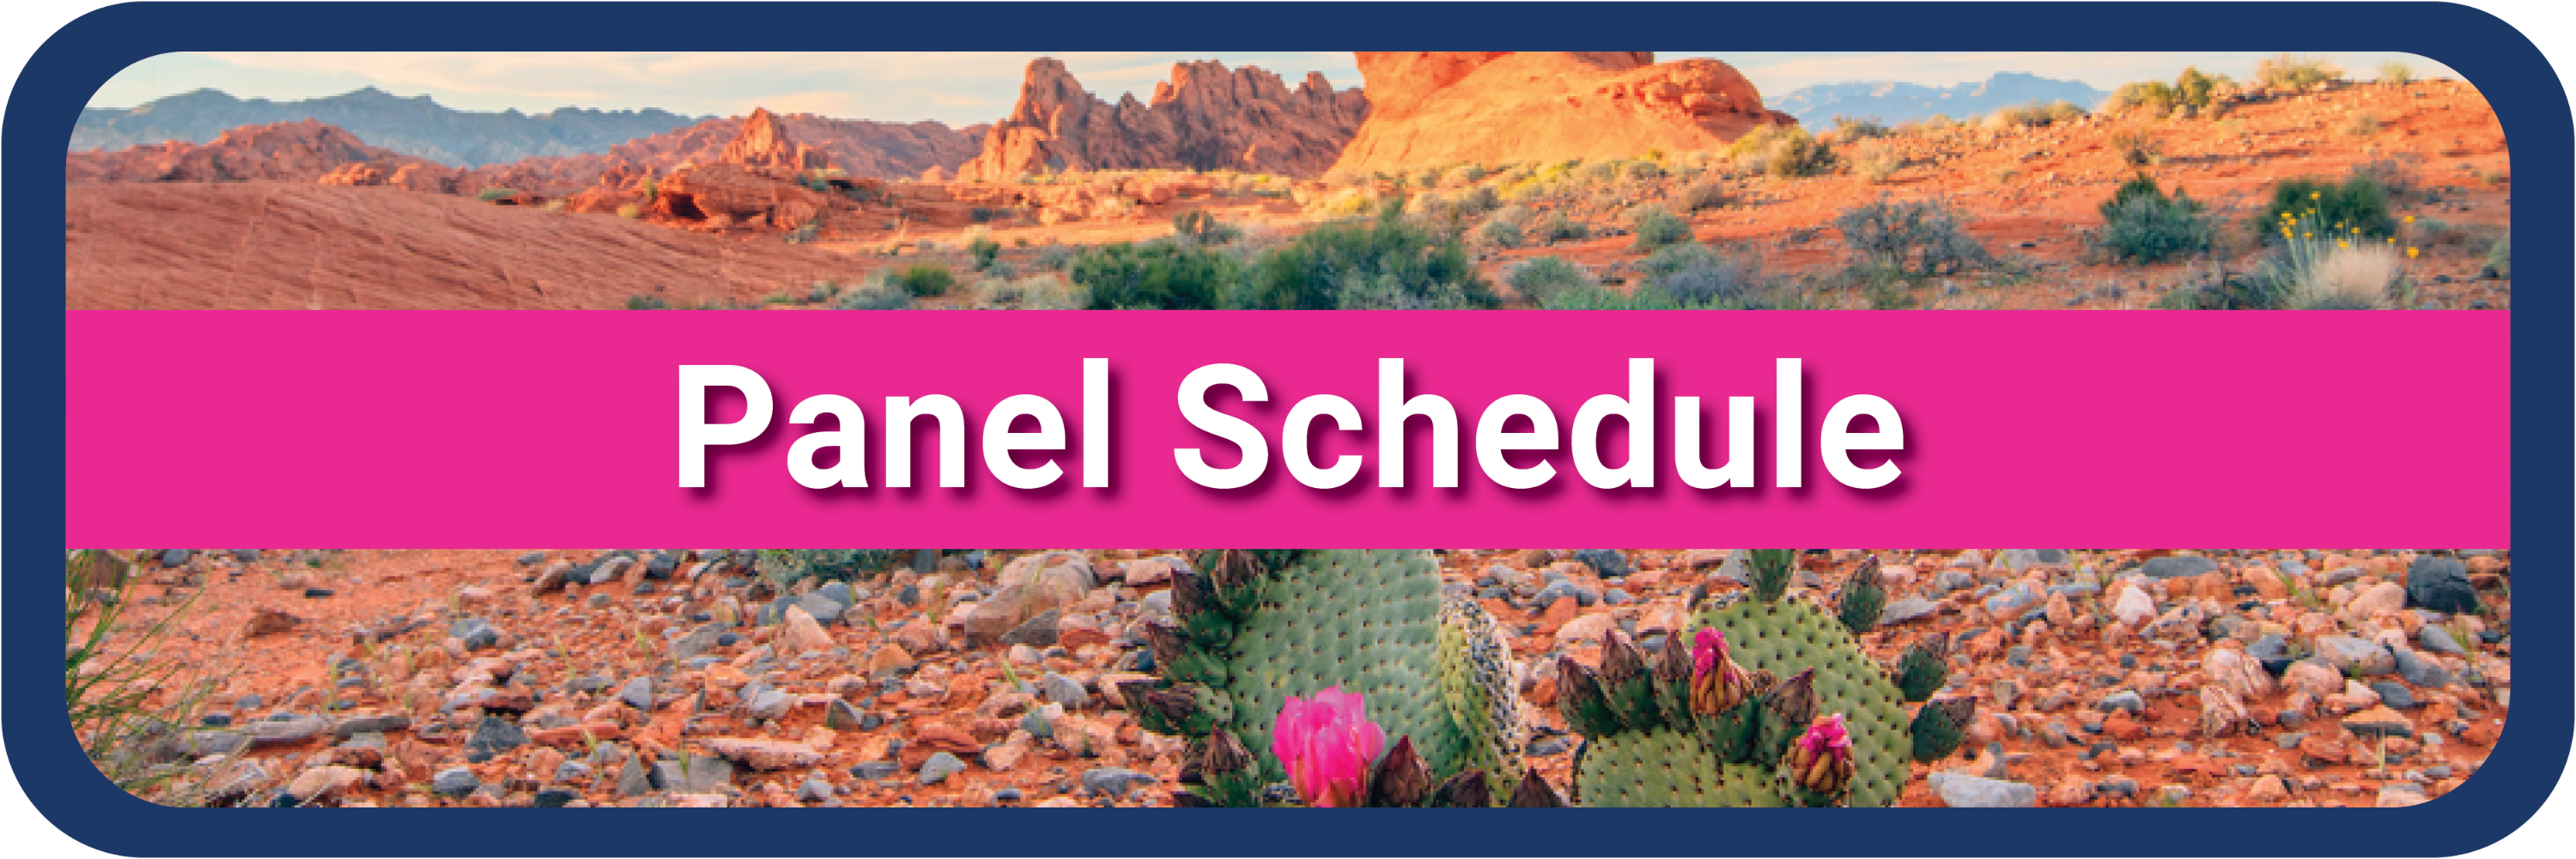 Panel Schedule Navigation Button